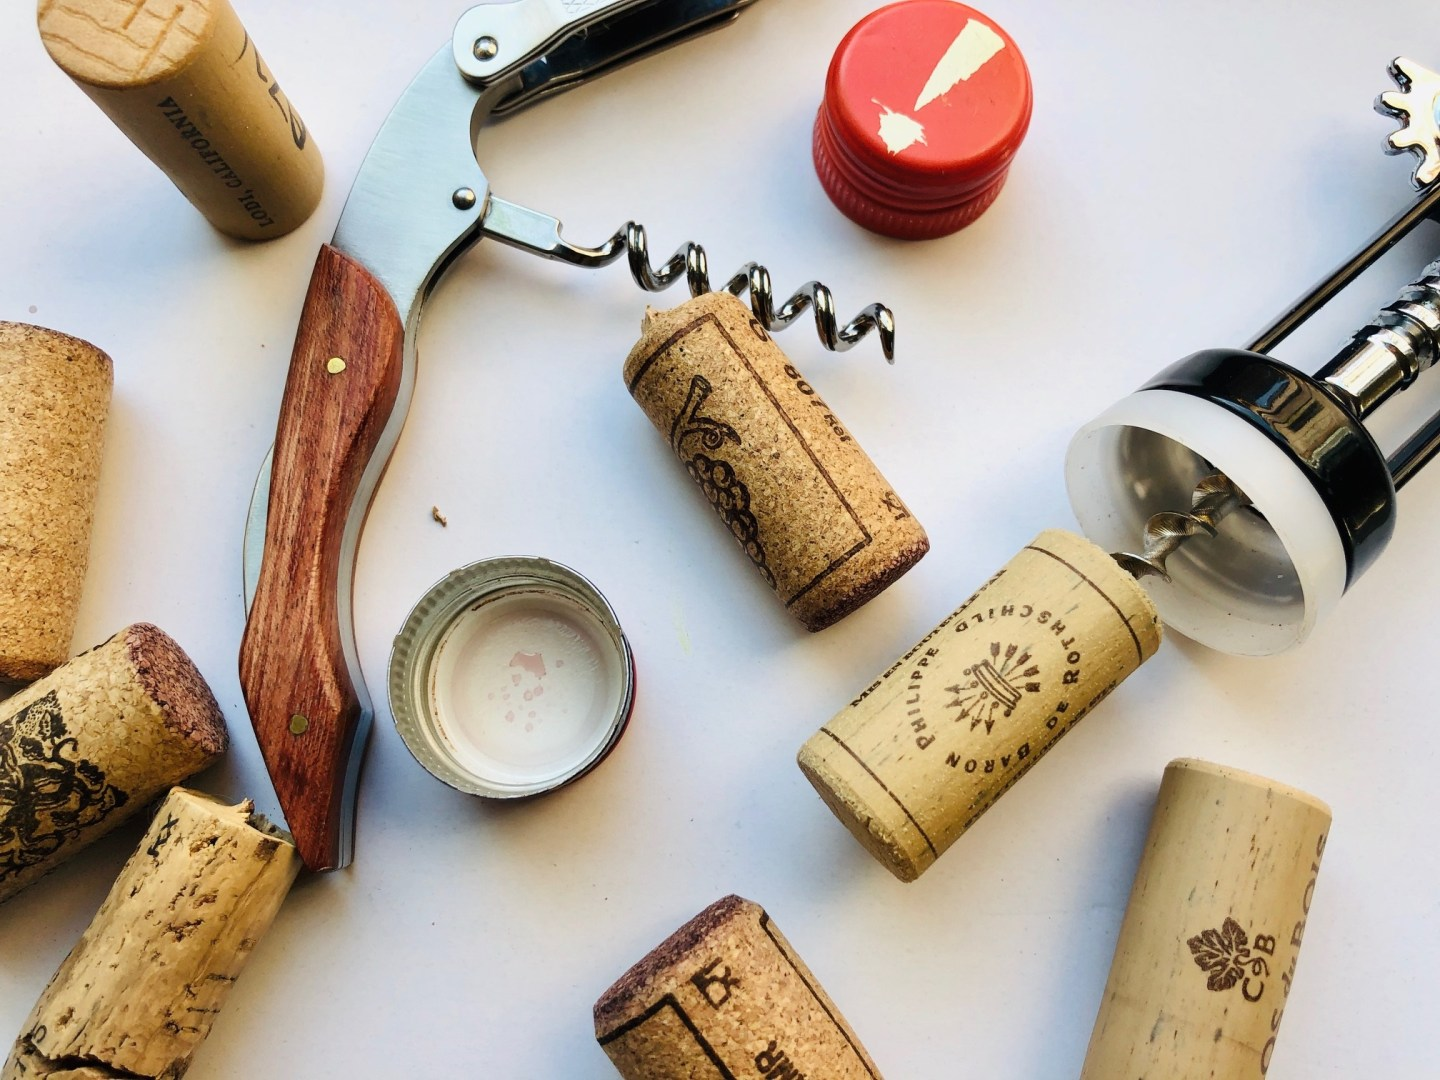 wine waste and used corks and caps